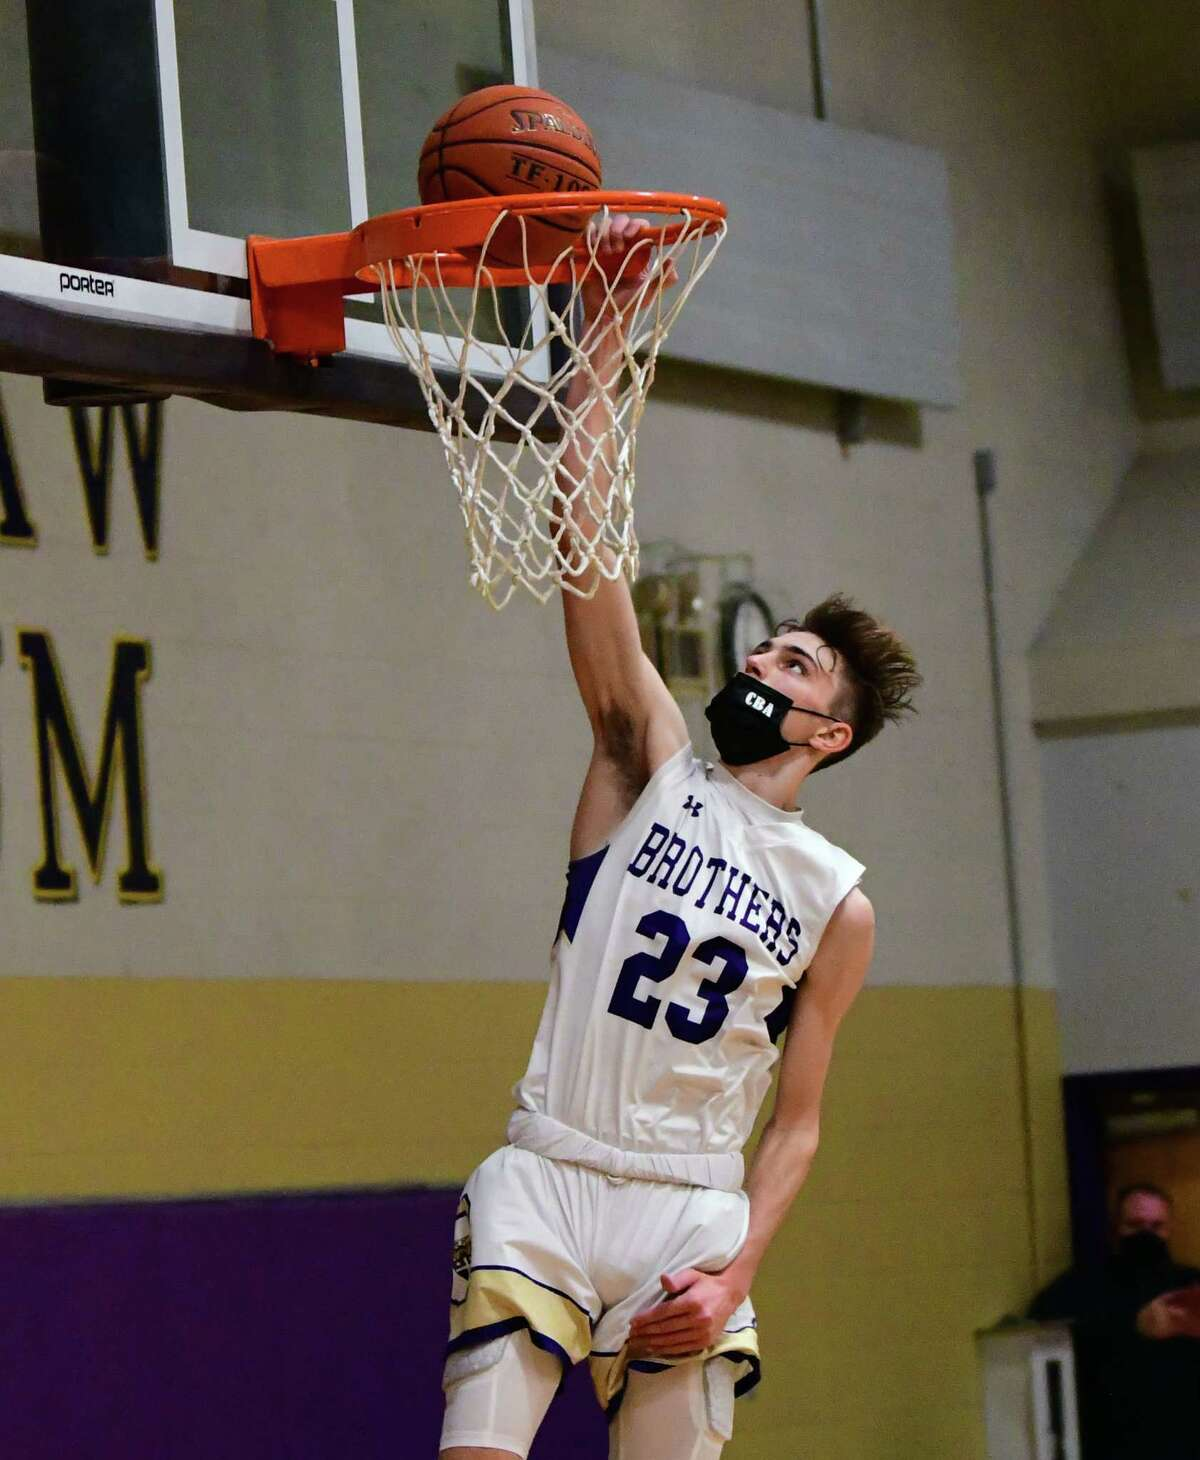 CBA's Hagen Foley dunks the ball during a basketball game against Guilderland on Thursday, Feb. 18, 2021 in Colonie, N.Y. (Lori Van Buren/Times Union)